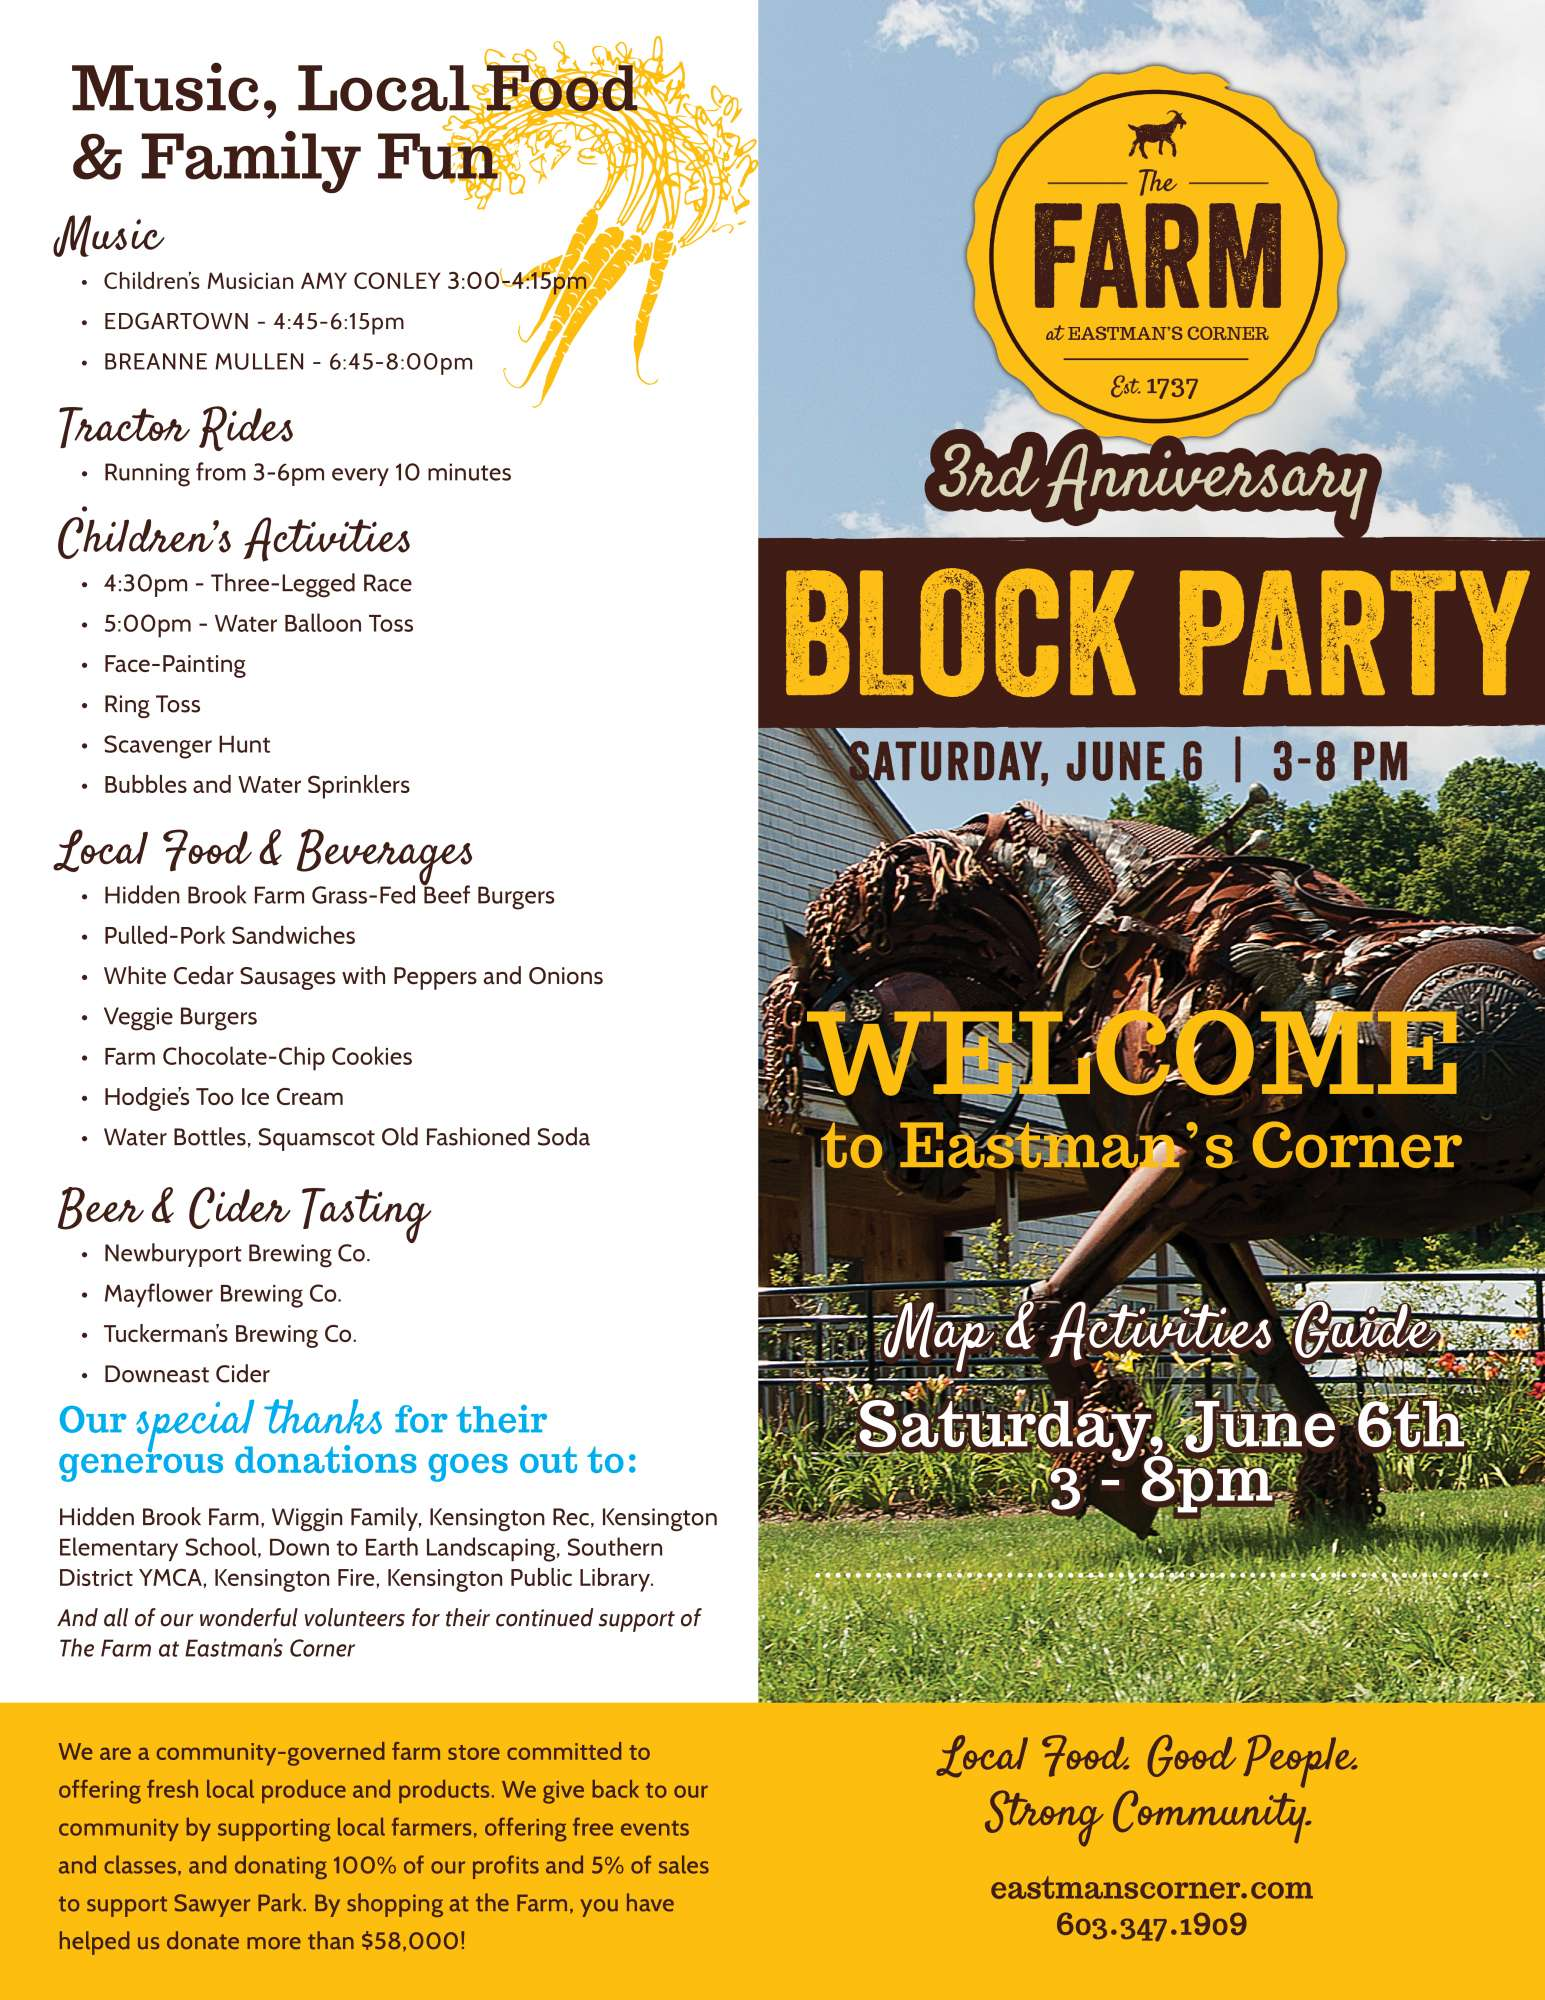 the farm at eastman s corner 2015 block party flyer image